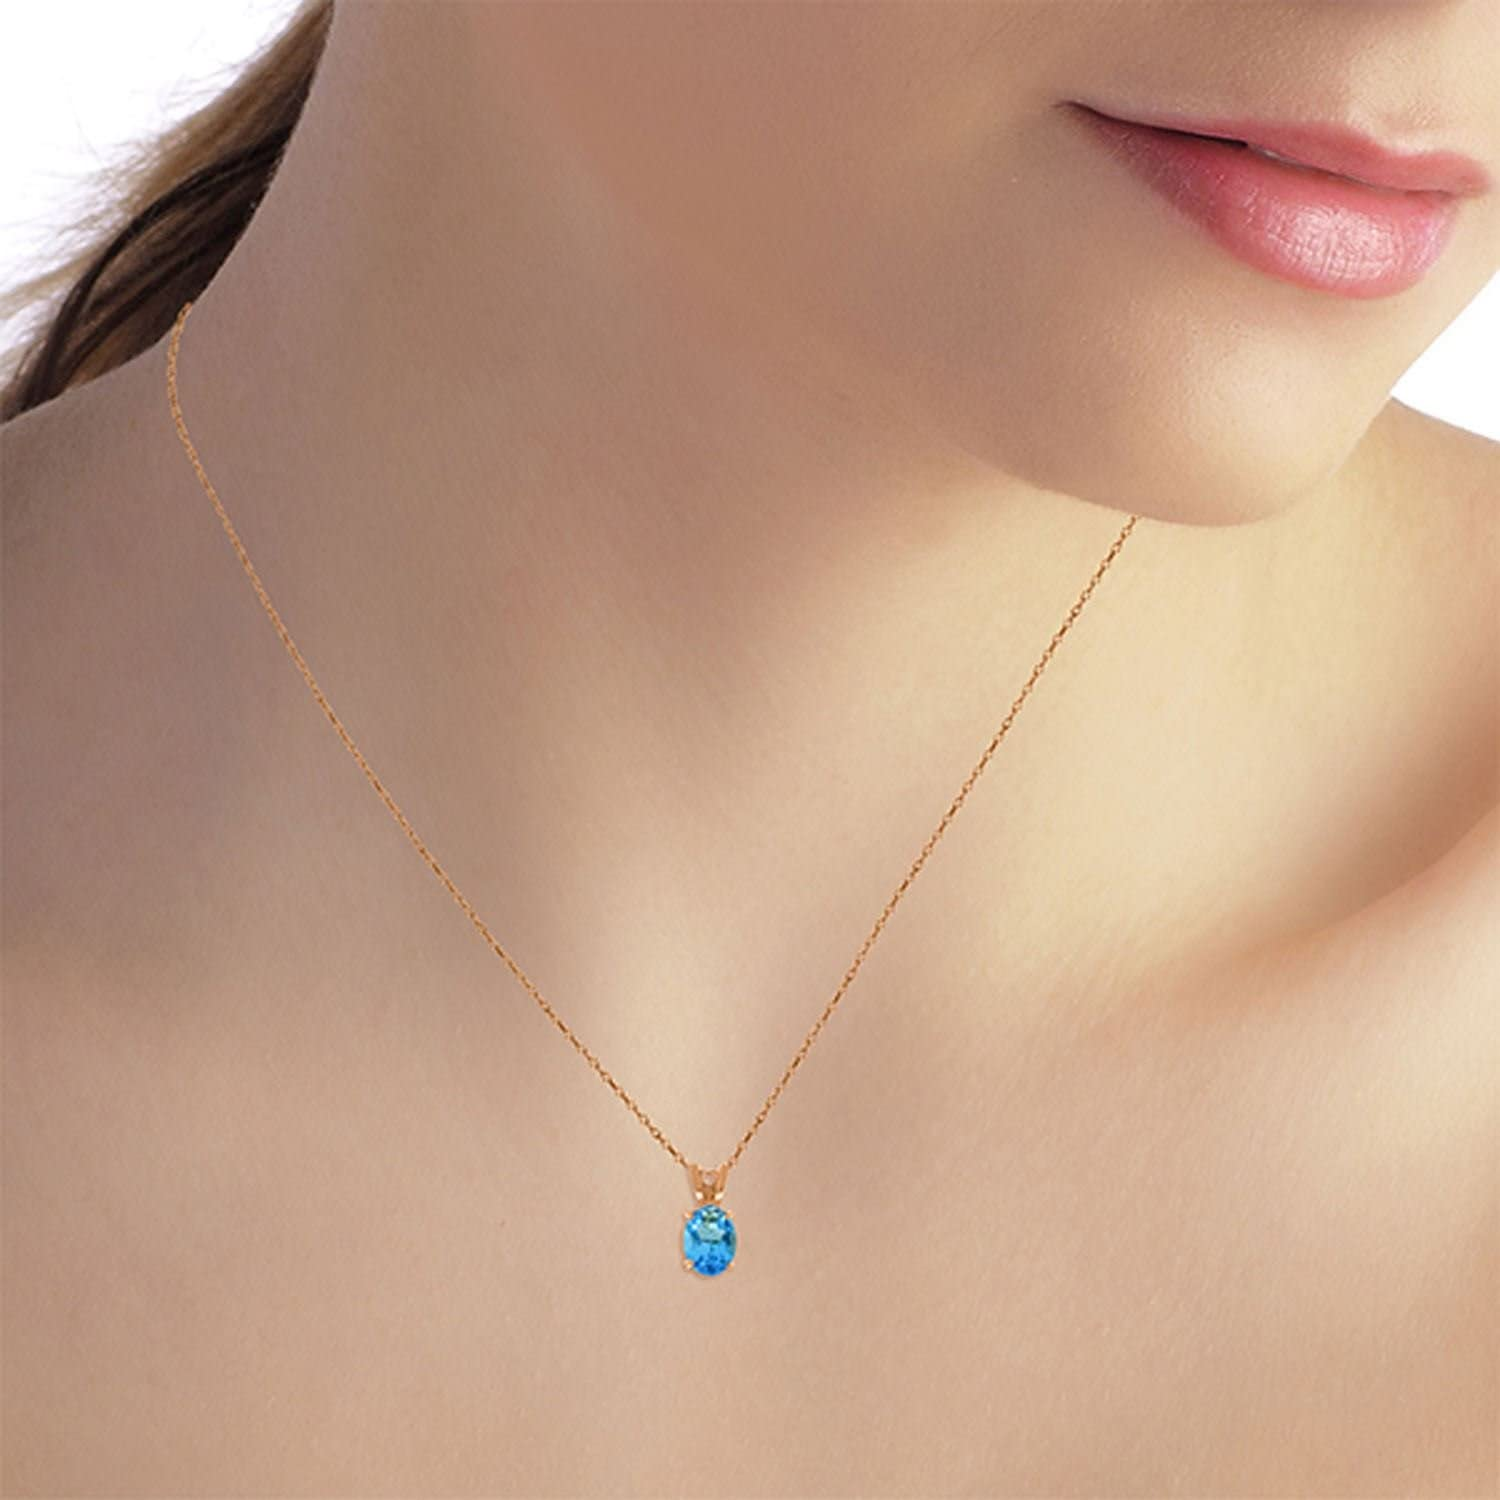 ALARRI 0.85 Carat 14K Solid Rose Gold Solitaire Blue Topaz Necklace with 24 Inch Chain Length